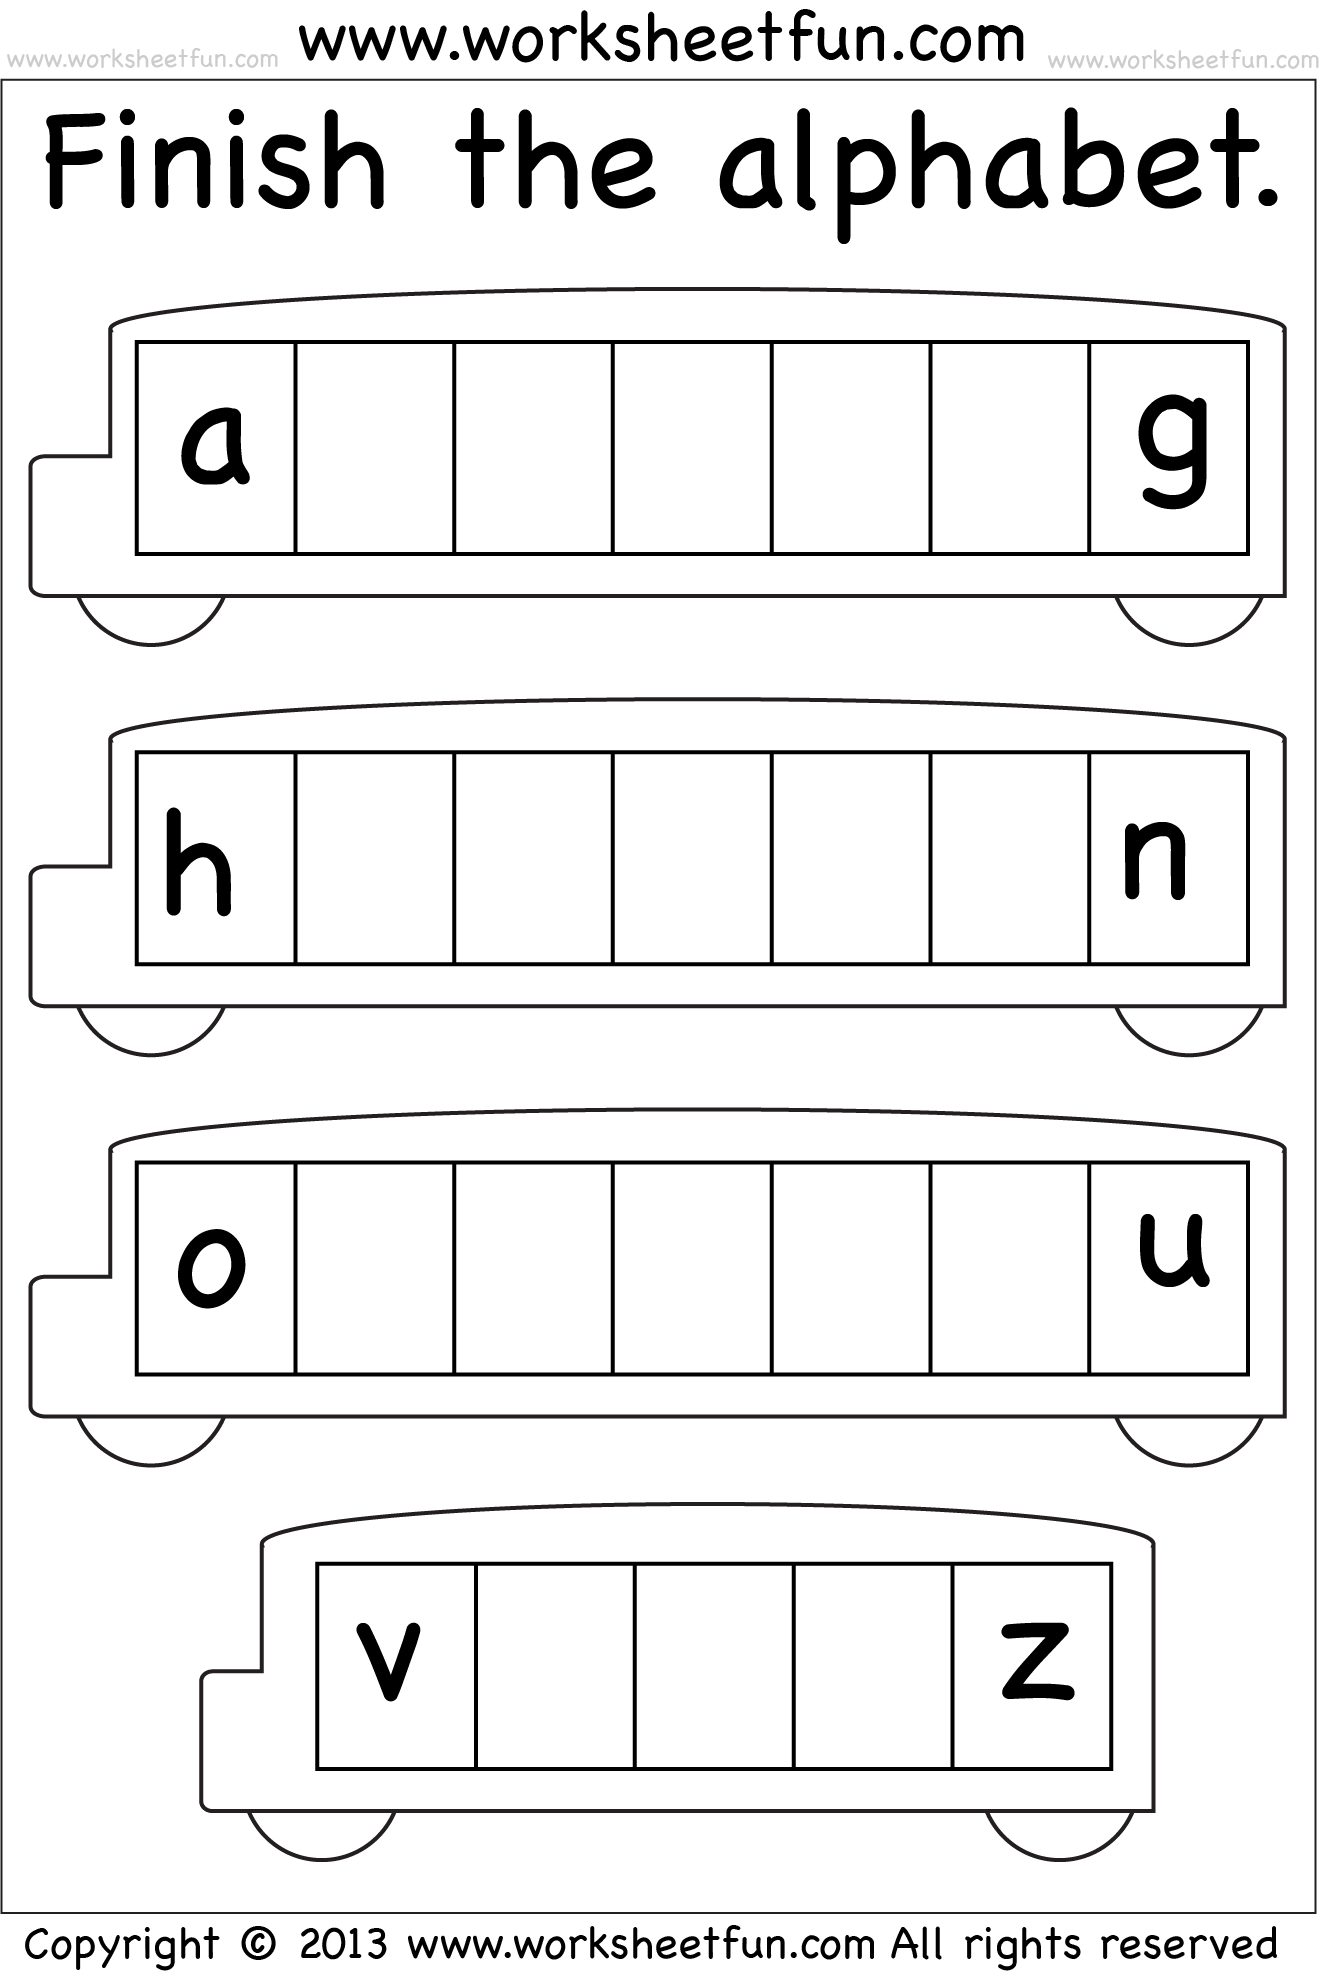 Missing Lowercase Letters Missing Small Letters Worksheet Free Printable Worksheets